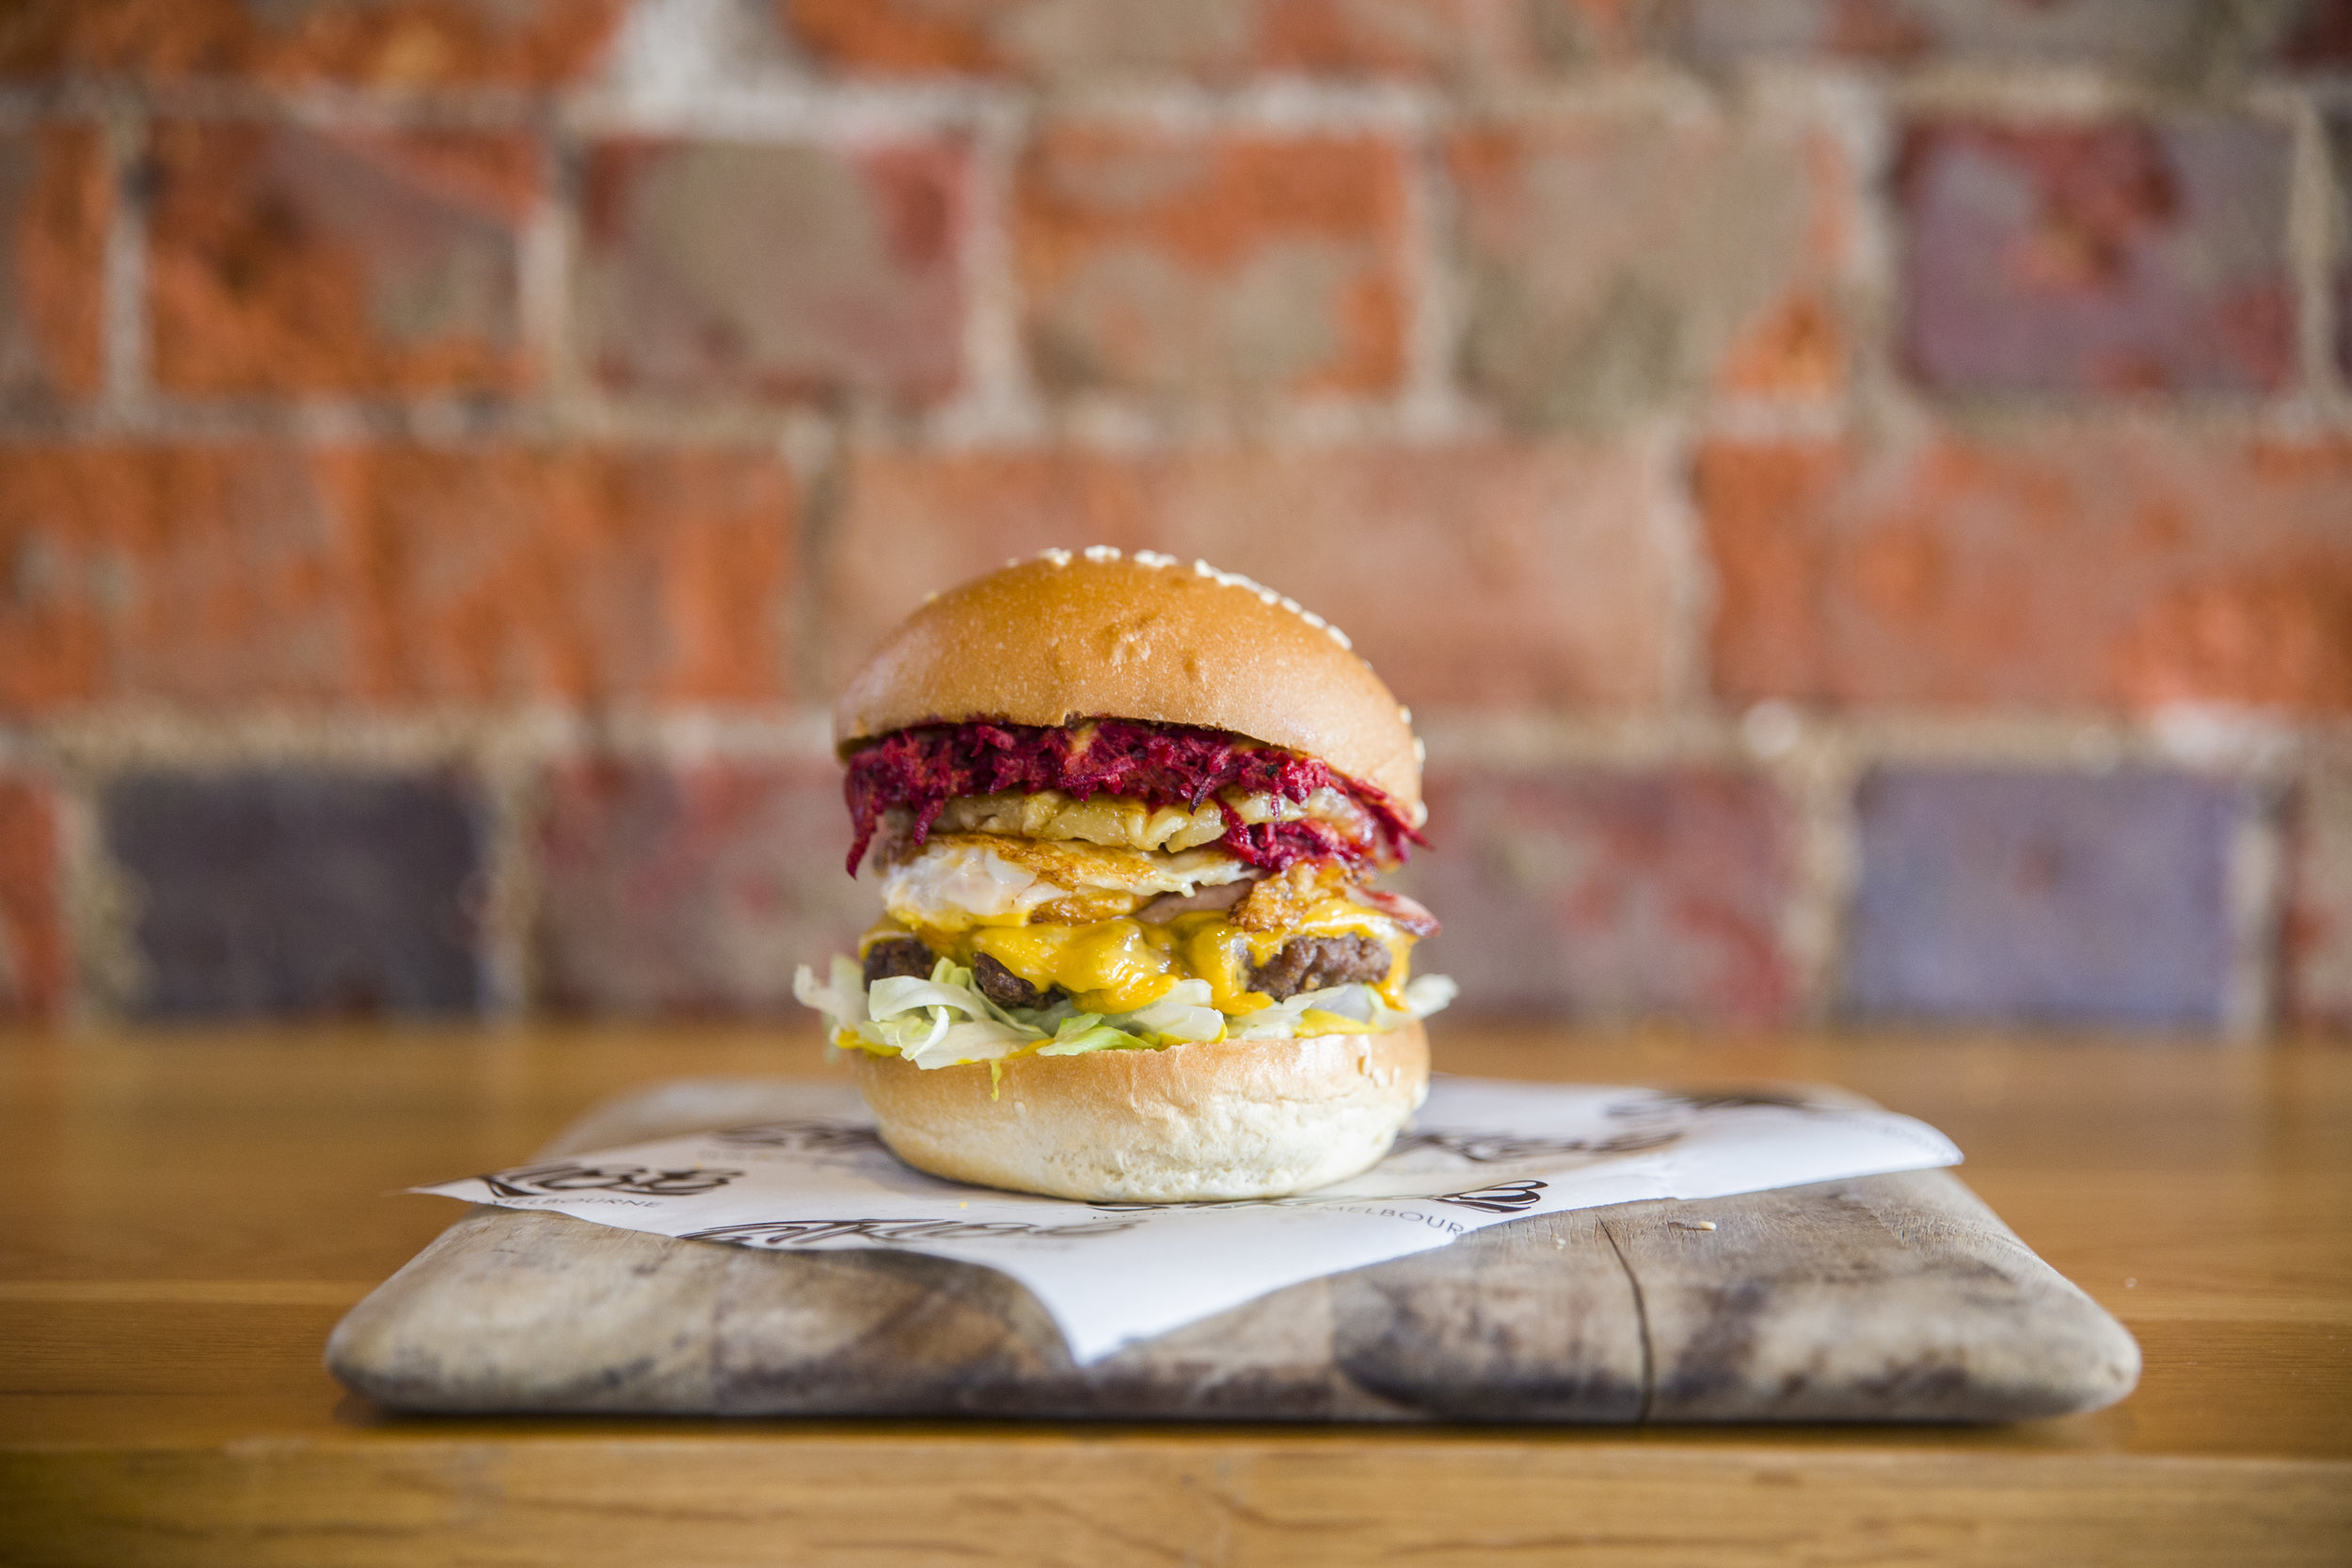 uncle george - Beef, bacon, egg, pineapple. cheese, lettuce, beetroot relish, onion, mustard$15